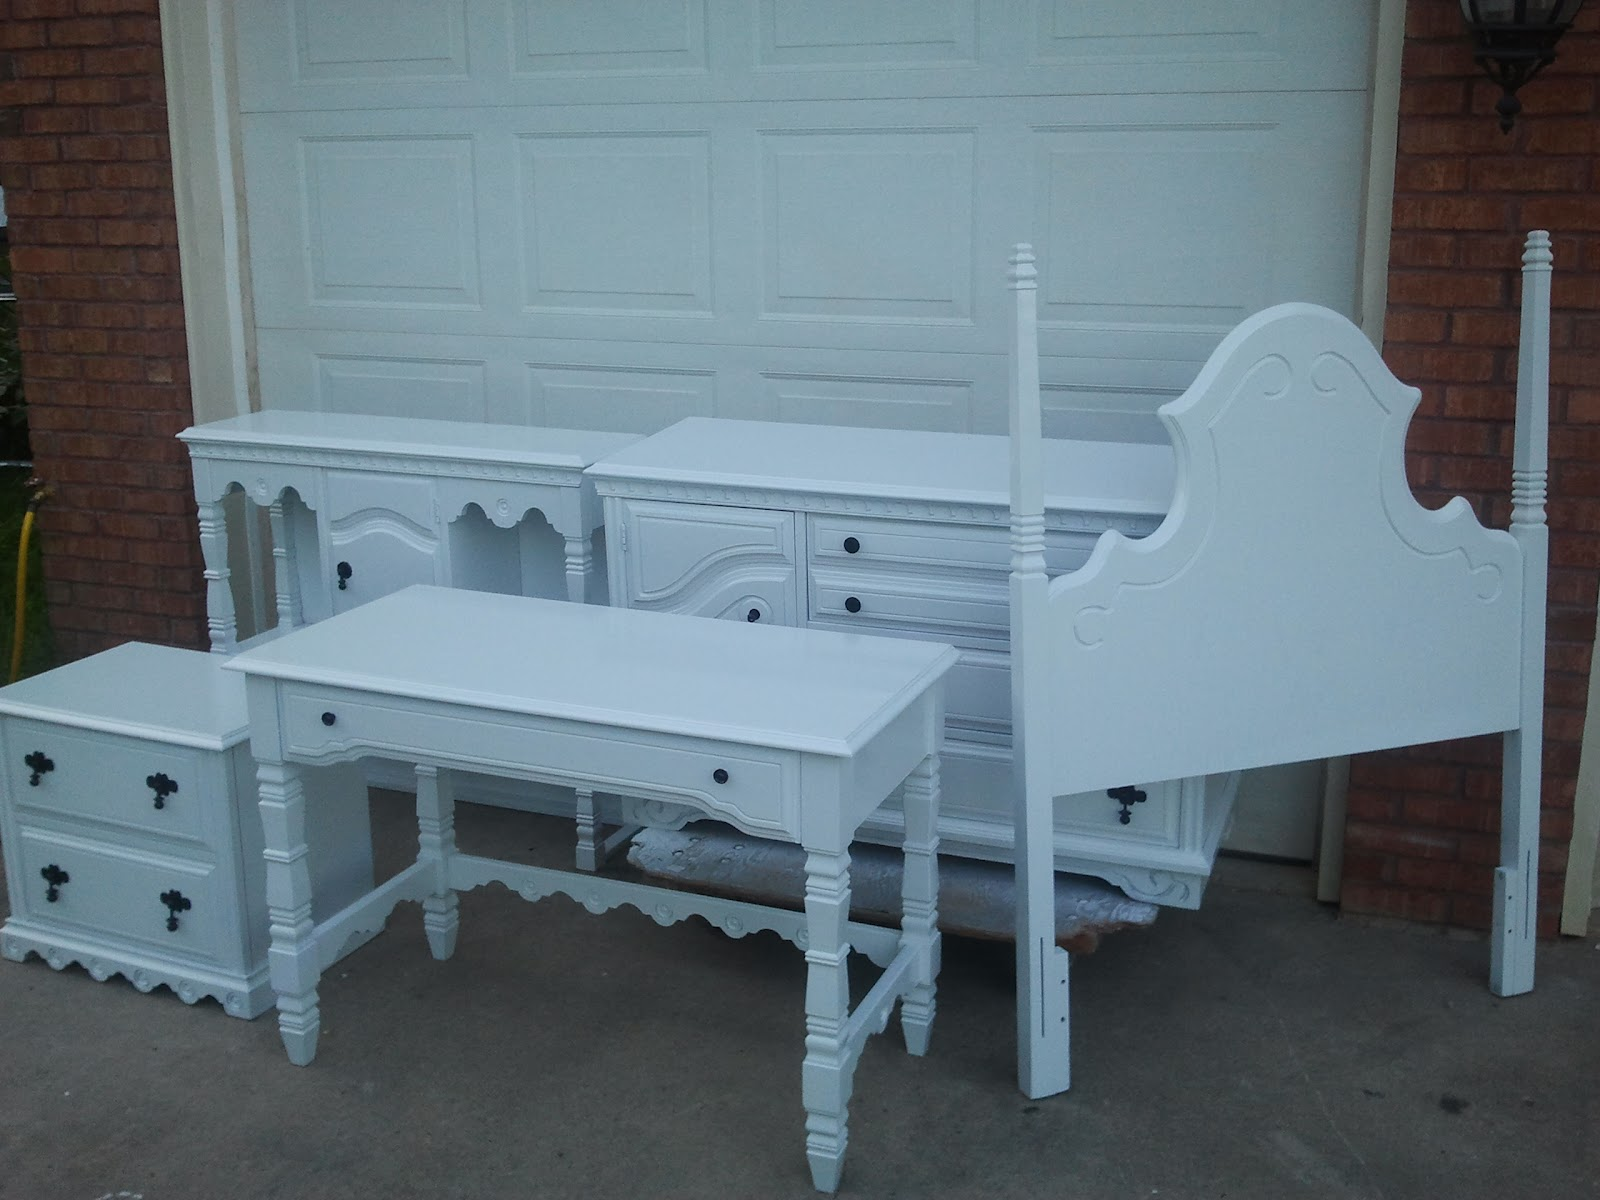 Junk Refurbished Recycled Furniture Shabby Chic Girls Bedroom Set